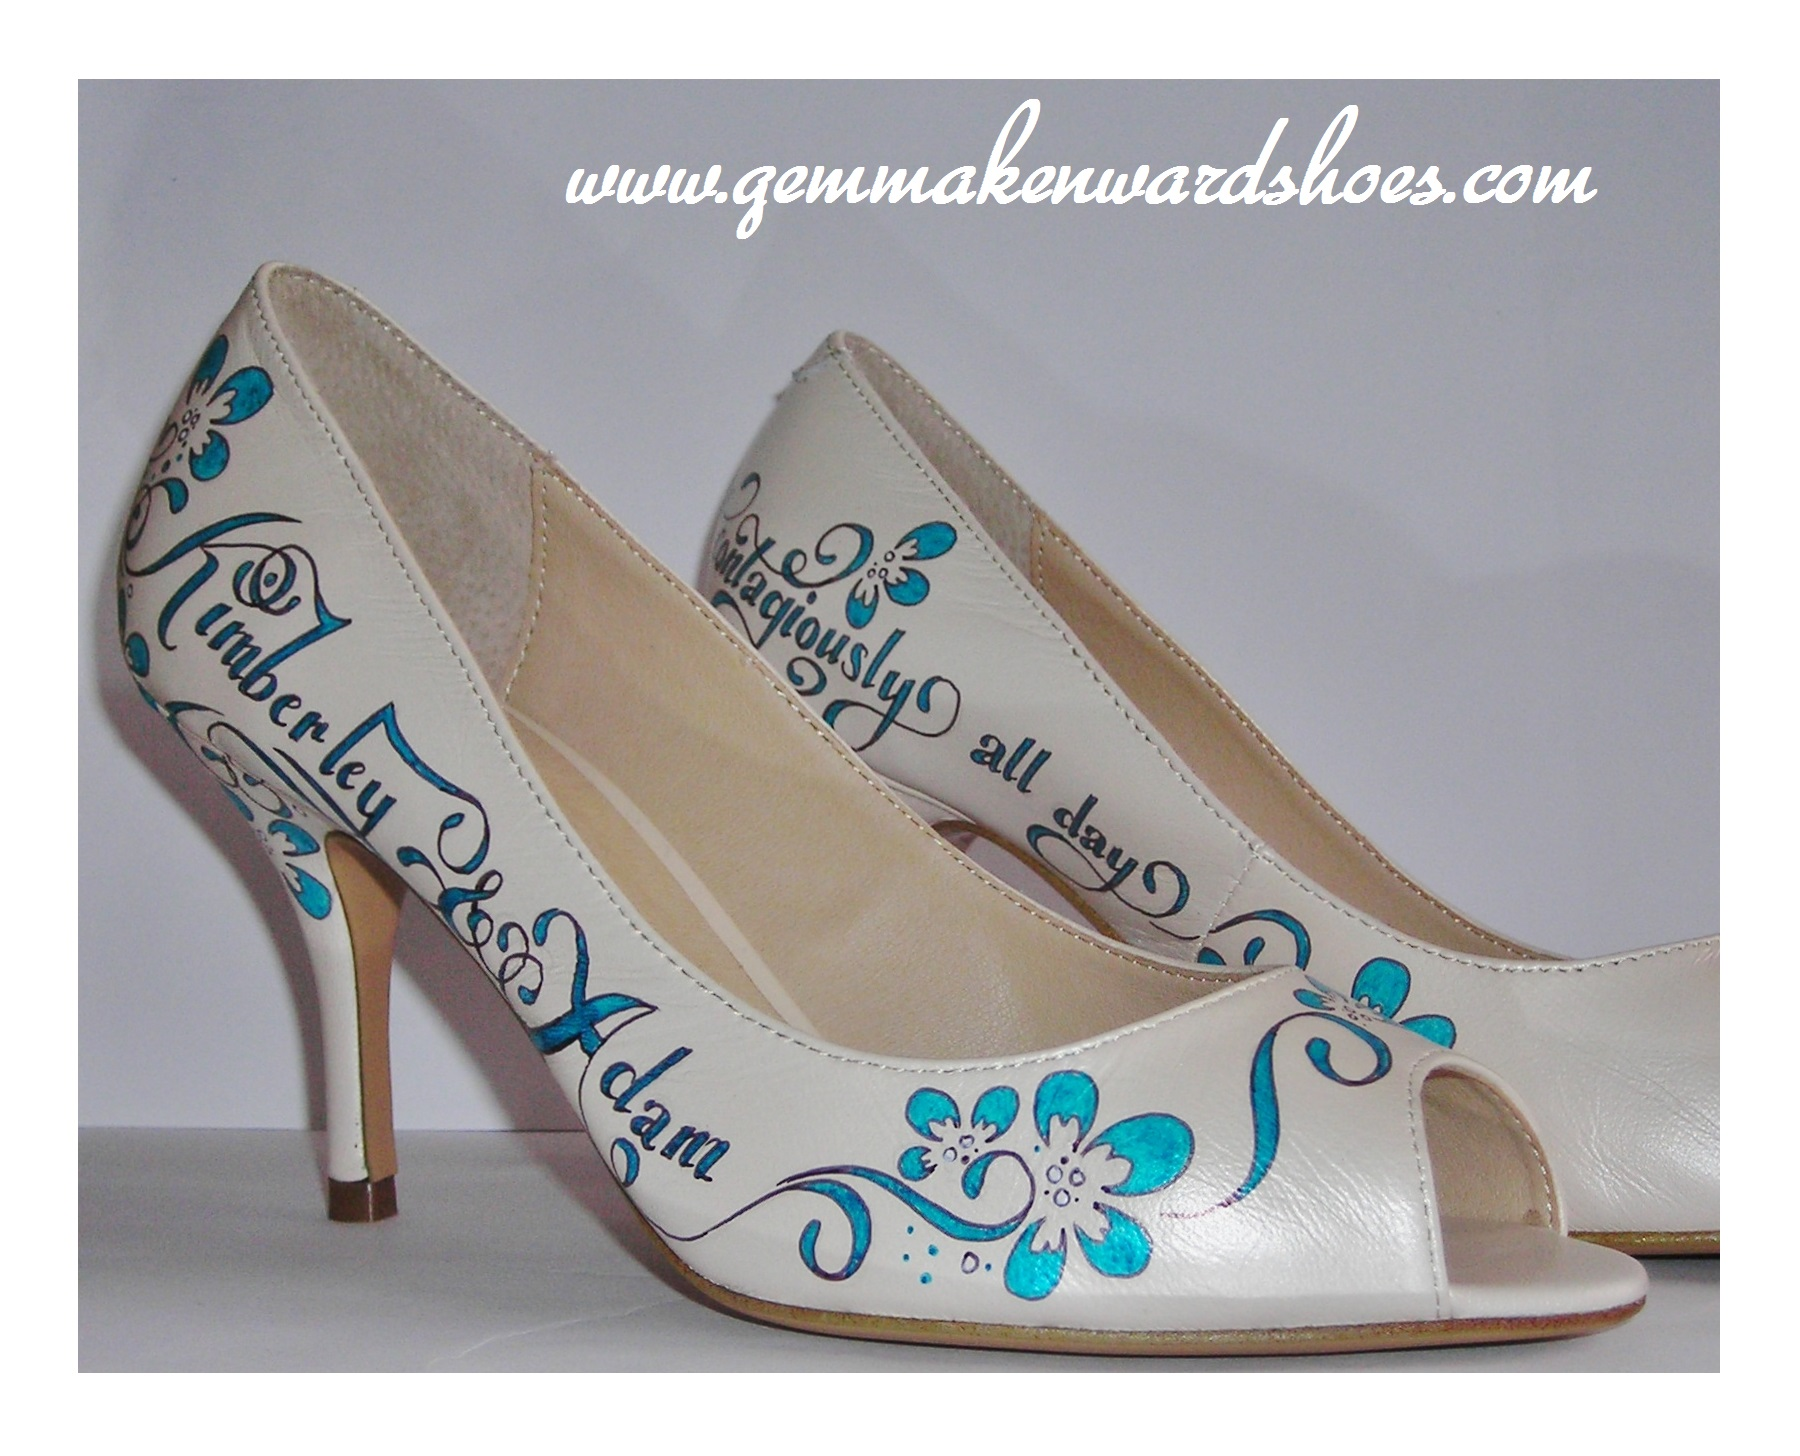 These shoes look so comfortable and delicate. The leather was so soft and a dream to paint on